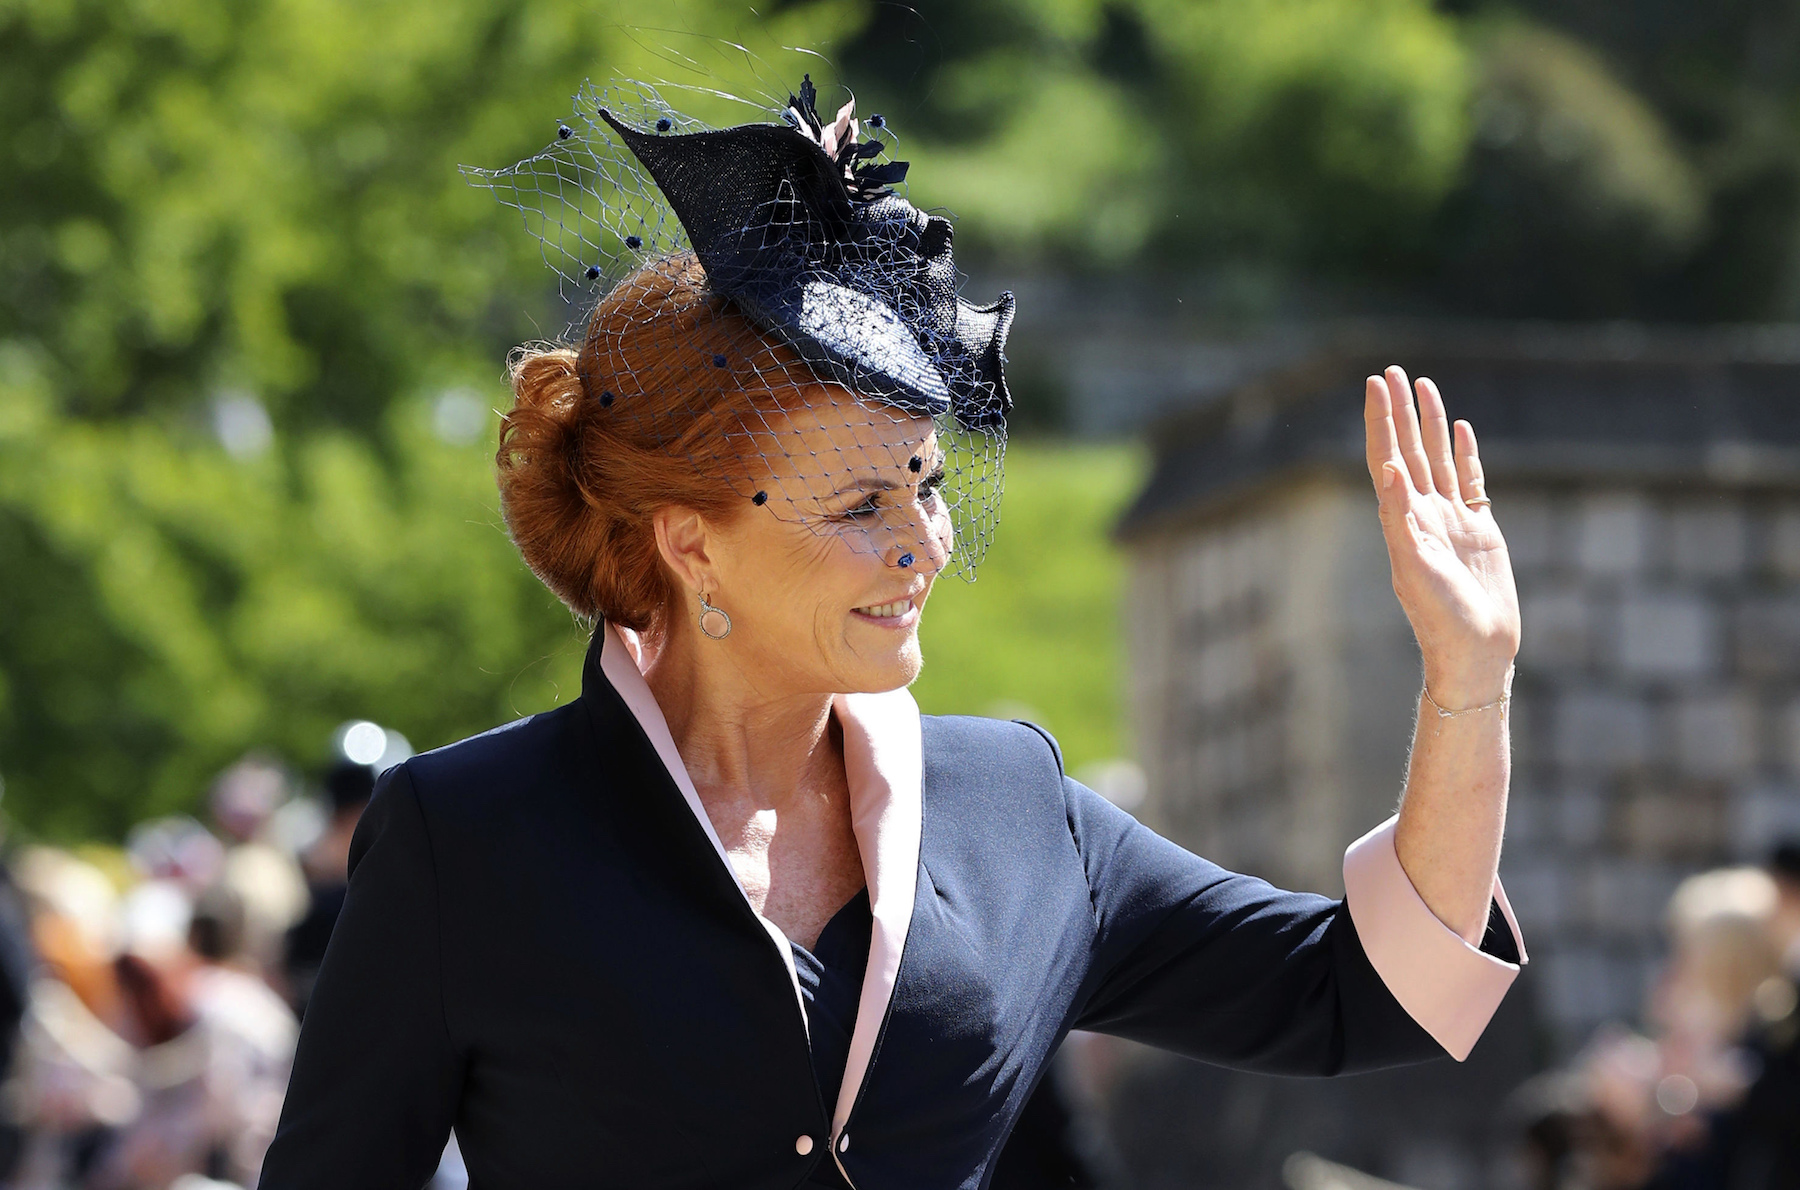 "<div class=""meta image-caption""><div class=""origin-logo origin-image ap""><span>AP</span></div><span class=""caption-text"">The Duchess of York arrives at St George's Chapel at Windsor Castle for the wedding of Meghan Markle and Prince Harry. (Gareth Fuller/PA Wire)</span></div>"